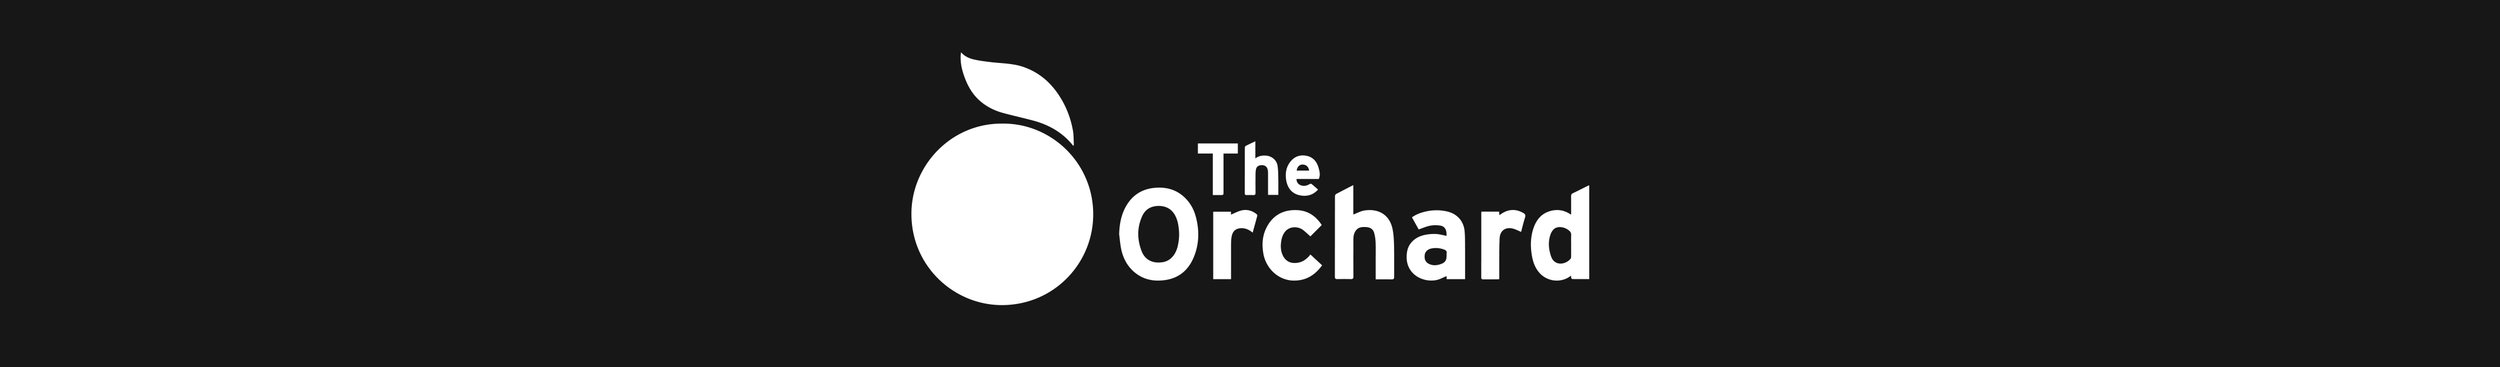 IntWebsite_Clients_White_Orchard,The.jpg